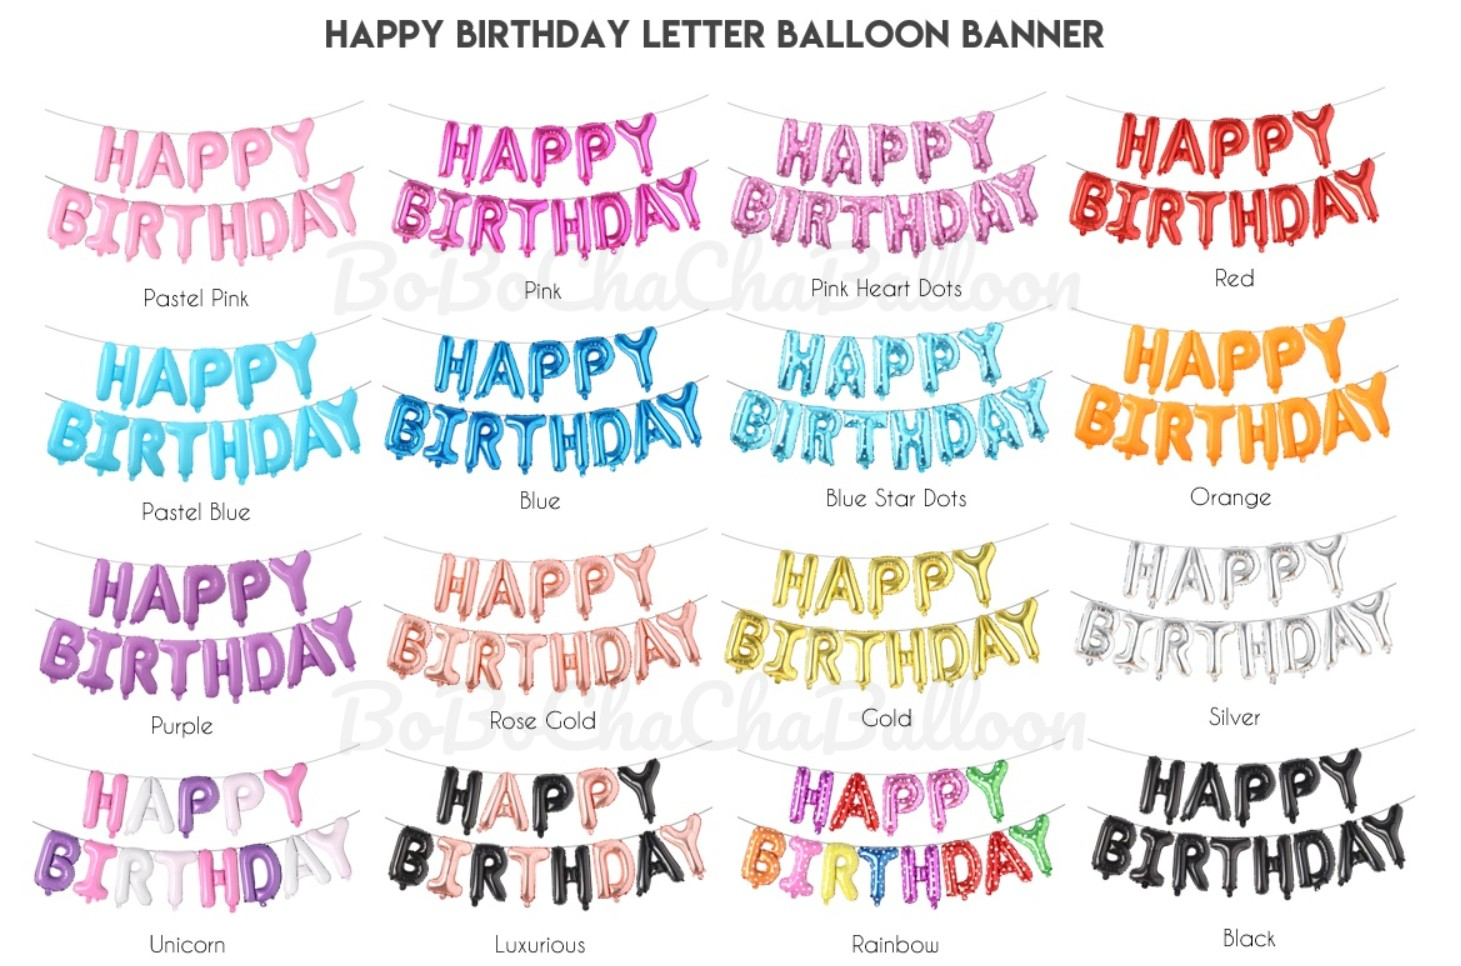 Pink Happy Birthday Letter Balloons.16 Inch Happy Birthday Letter Foil Balloons Banner Hot Pink